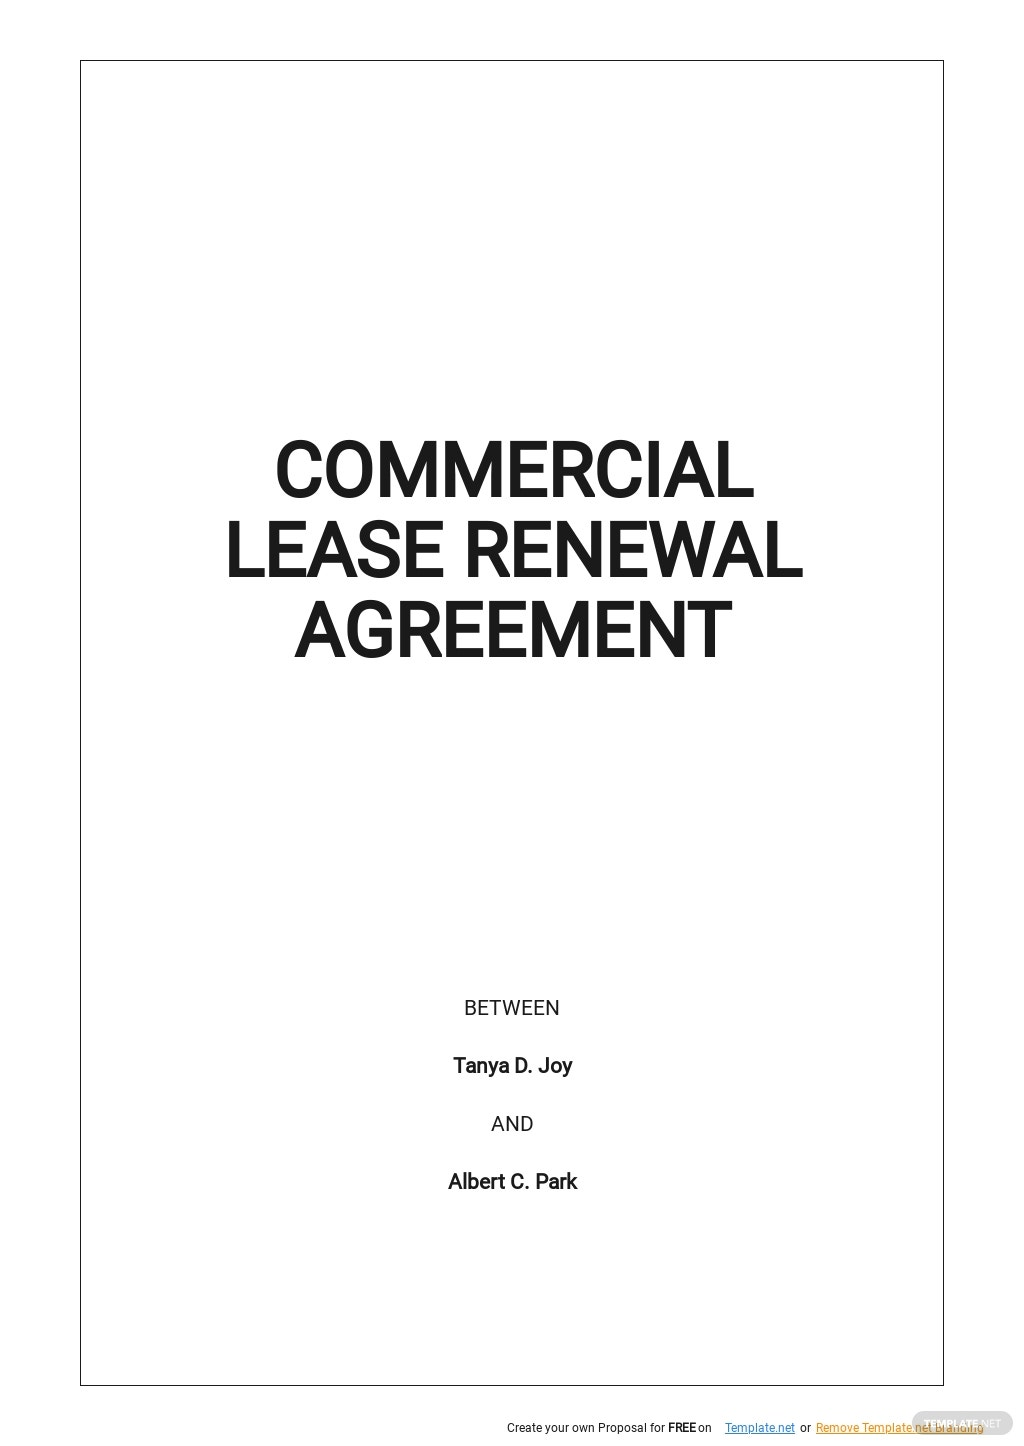 Commercial Lease Renewal Agreement Template.jpe